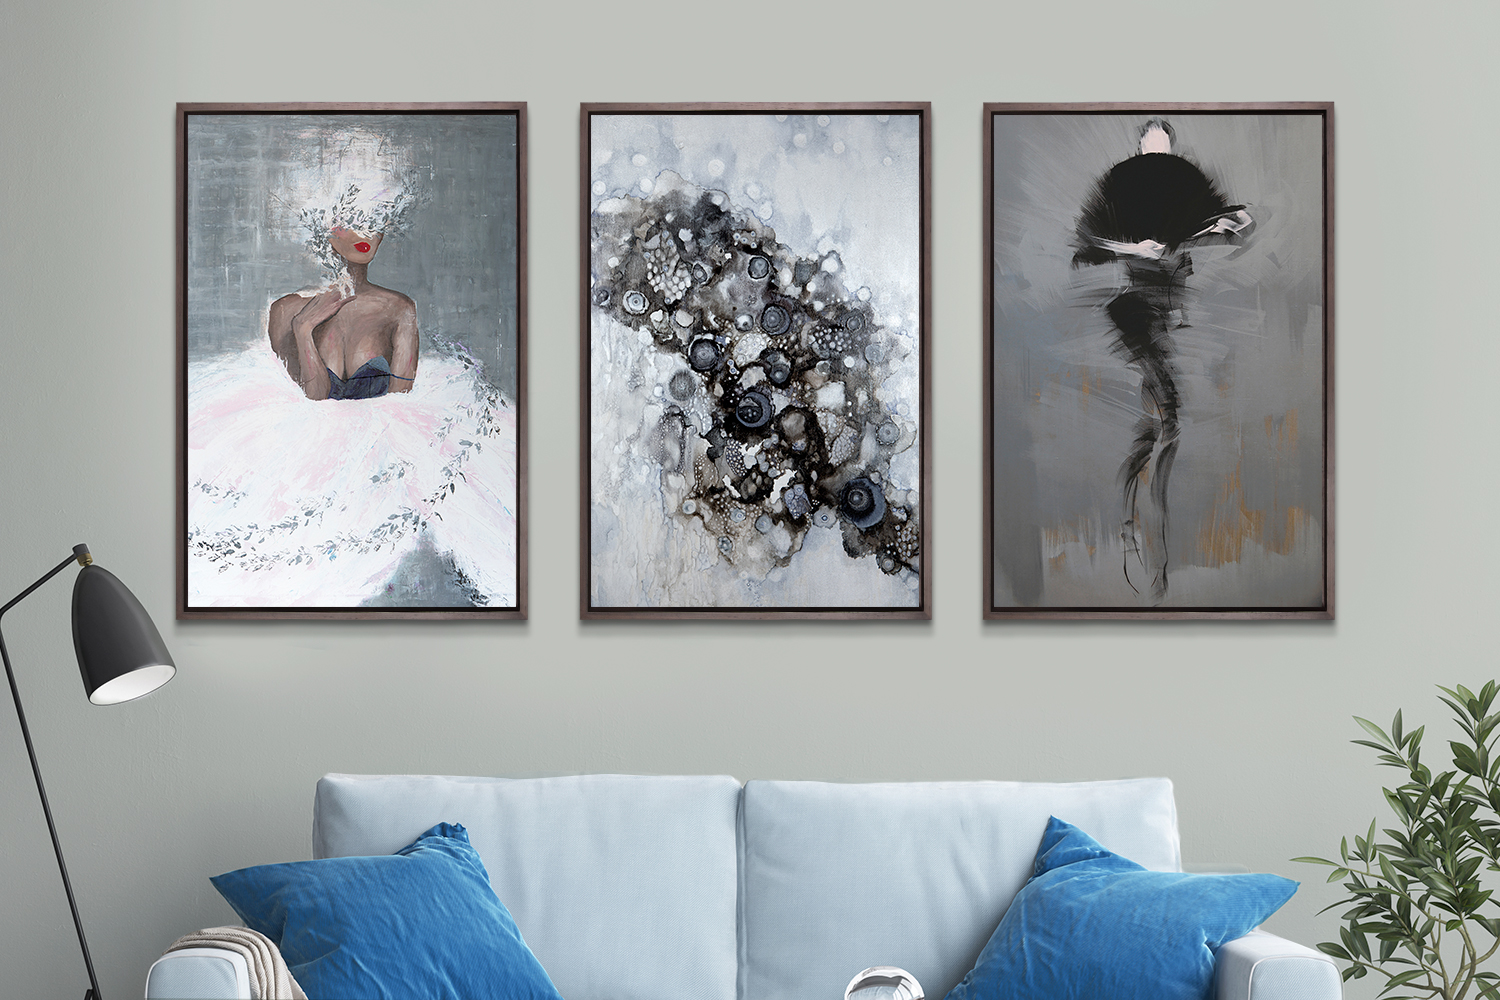 How To Pair Art With Metropolitan Benjamin Moore S 2019 Paint Color Of The Year Icanvas Blog Heartistry